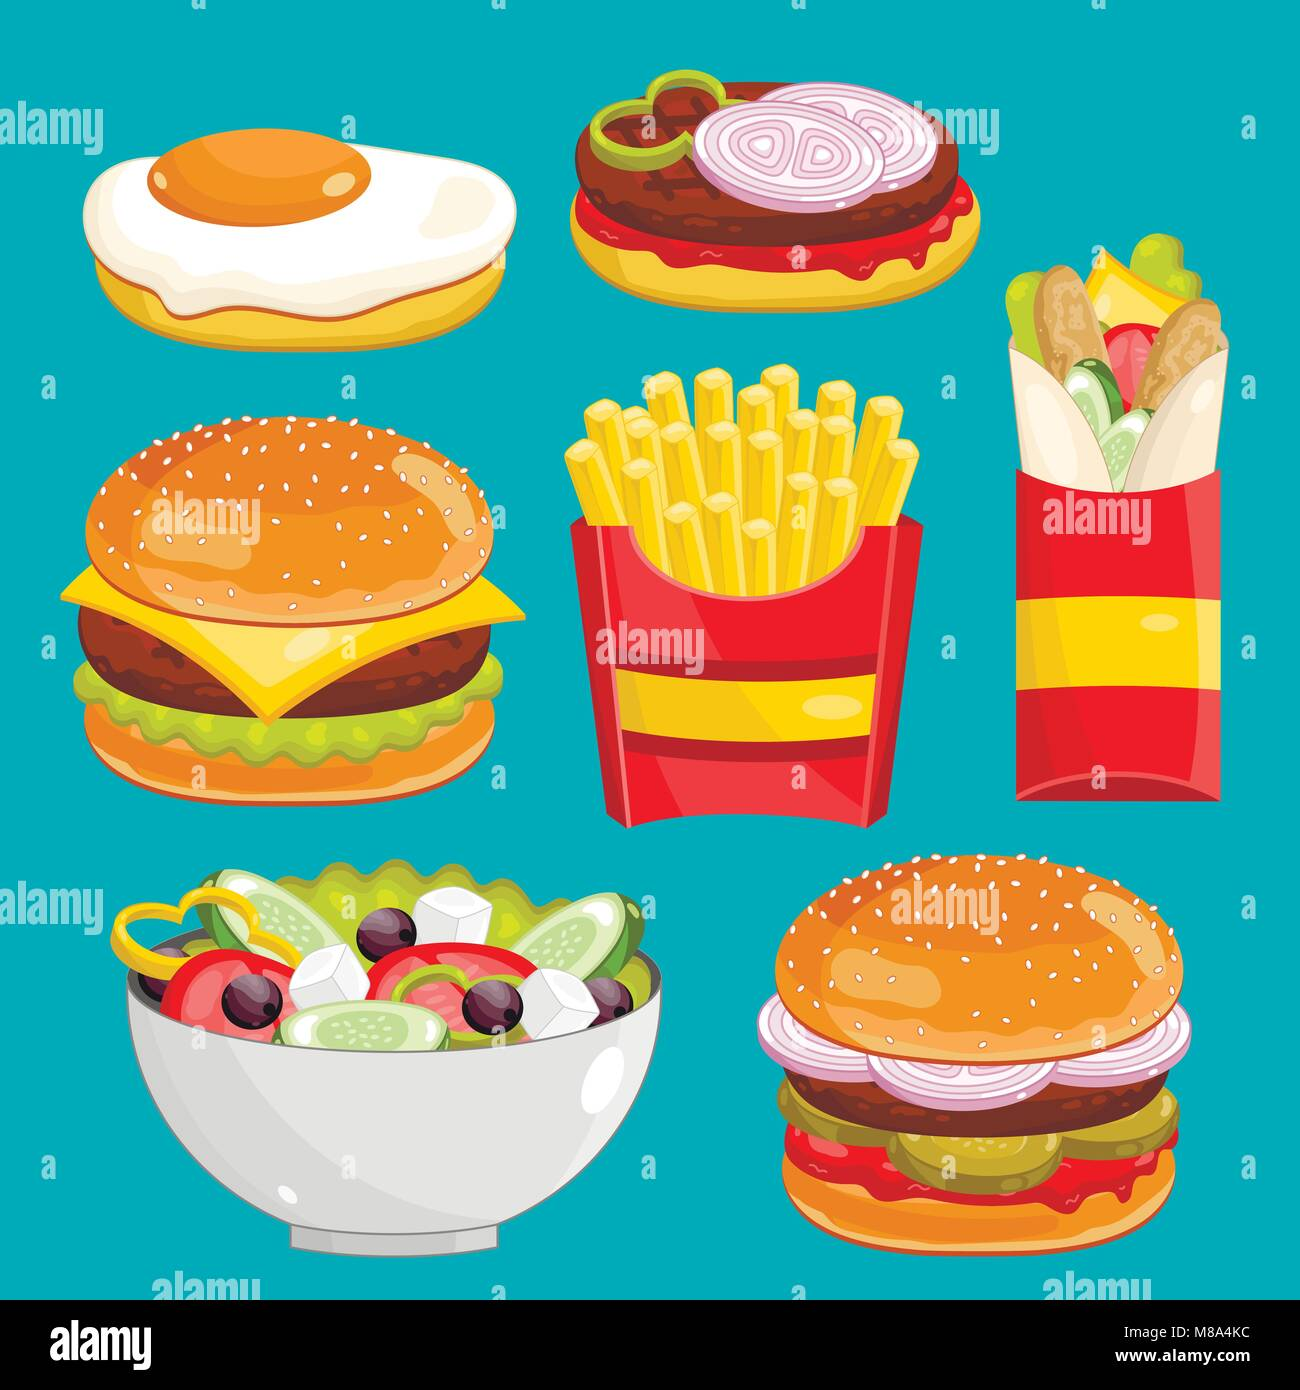 Fast food menu set, vector illustration - Stock Vector